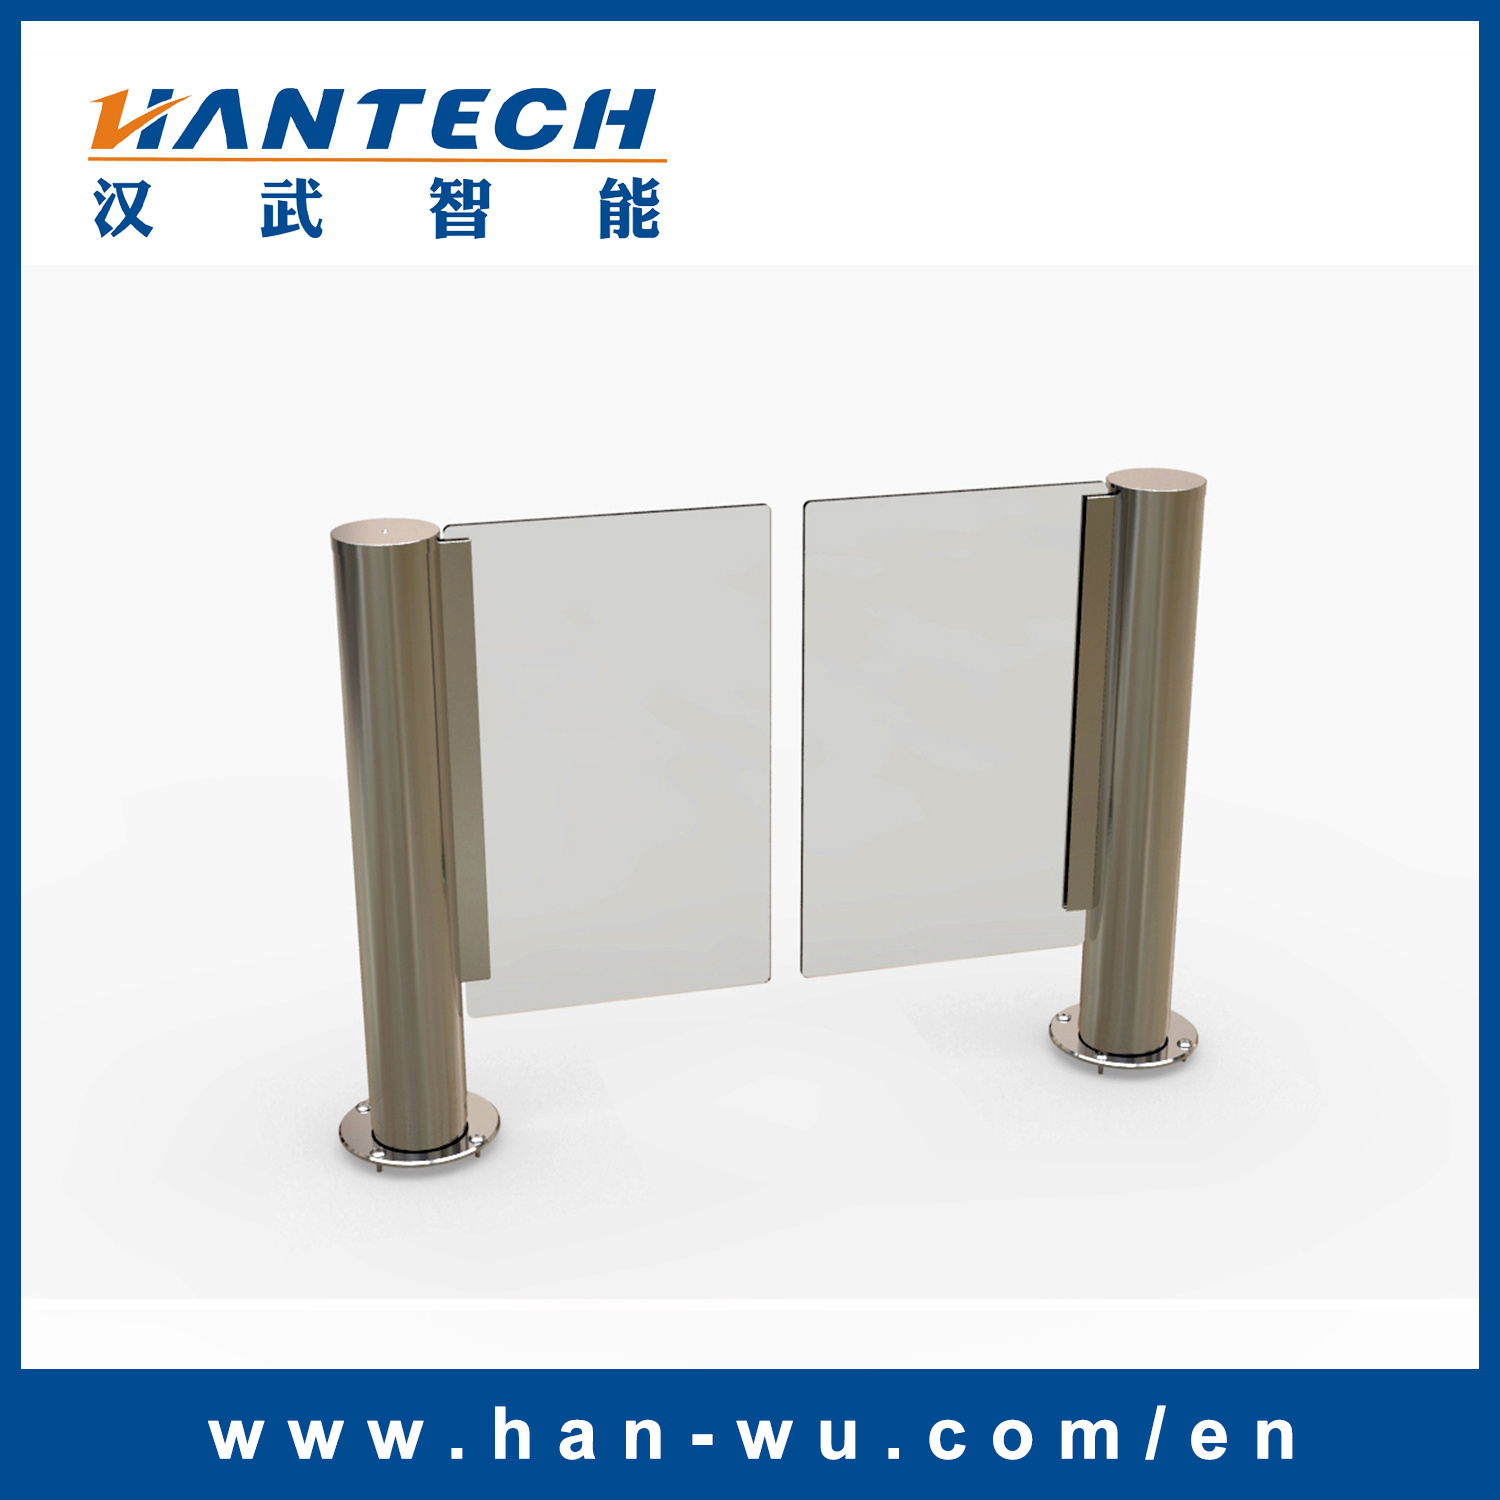 Half-Height Swing Gate for Transport of Goods